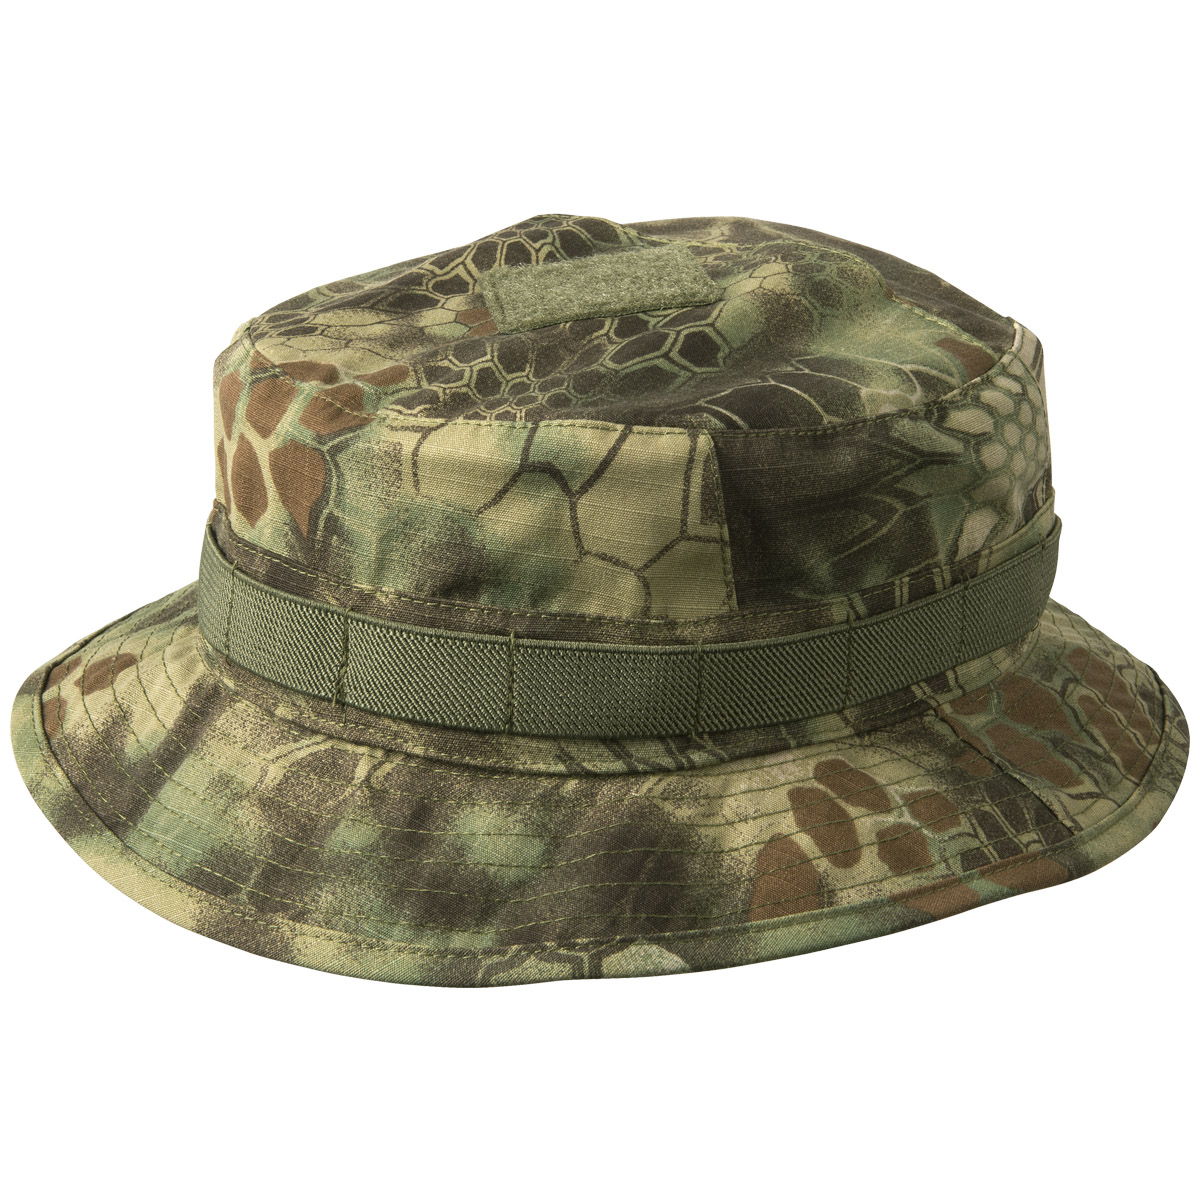 Sentinel Helikon CPU Boonie Jungle Hat Army Hunting Shooting Cap Ripstop Kryptek  Mandrake 268826b1995